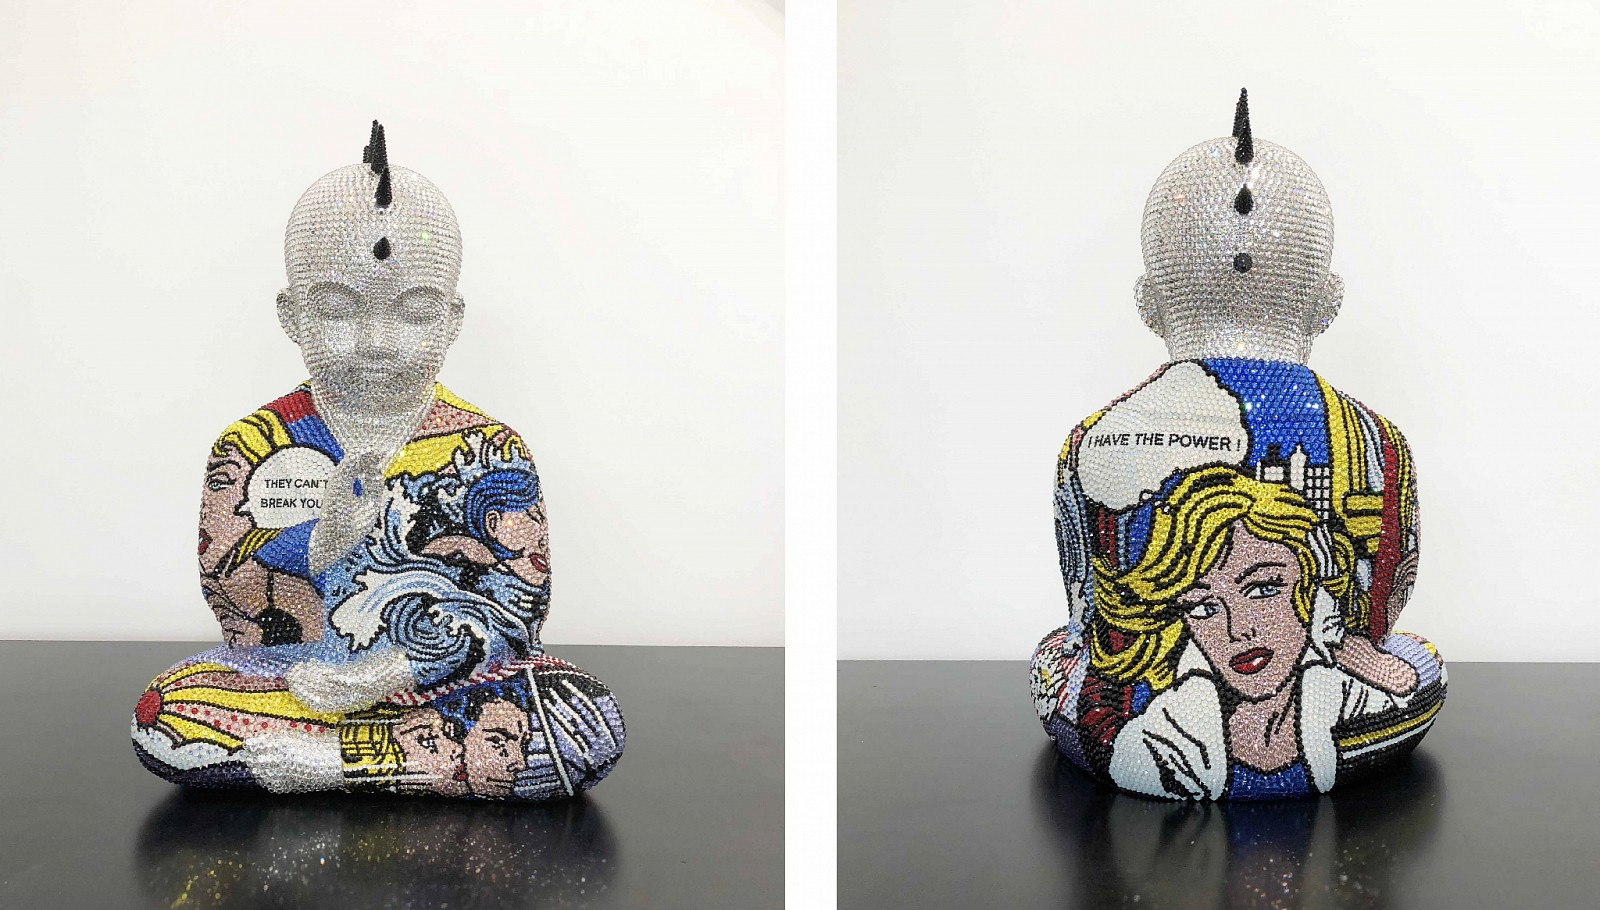 Metis Atash ,   Z I HAVE THE POWER Feat. Lichtenstein  ,  2018     Resin, acrylic paint and 28,000 Swarovski crystals ,  17 1/2 x 12 x 9 in. (45.7 x 30.5 x 19.1 cm)     ATAS00083